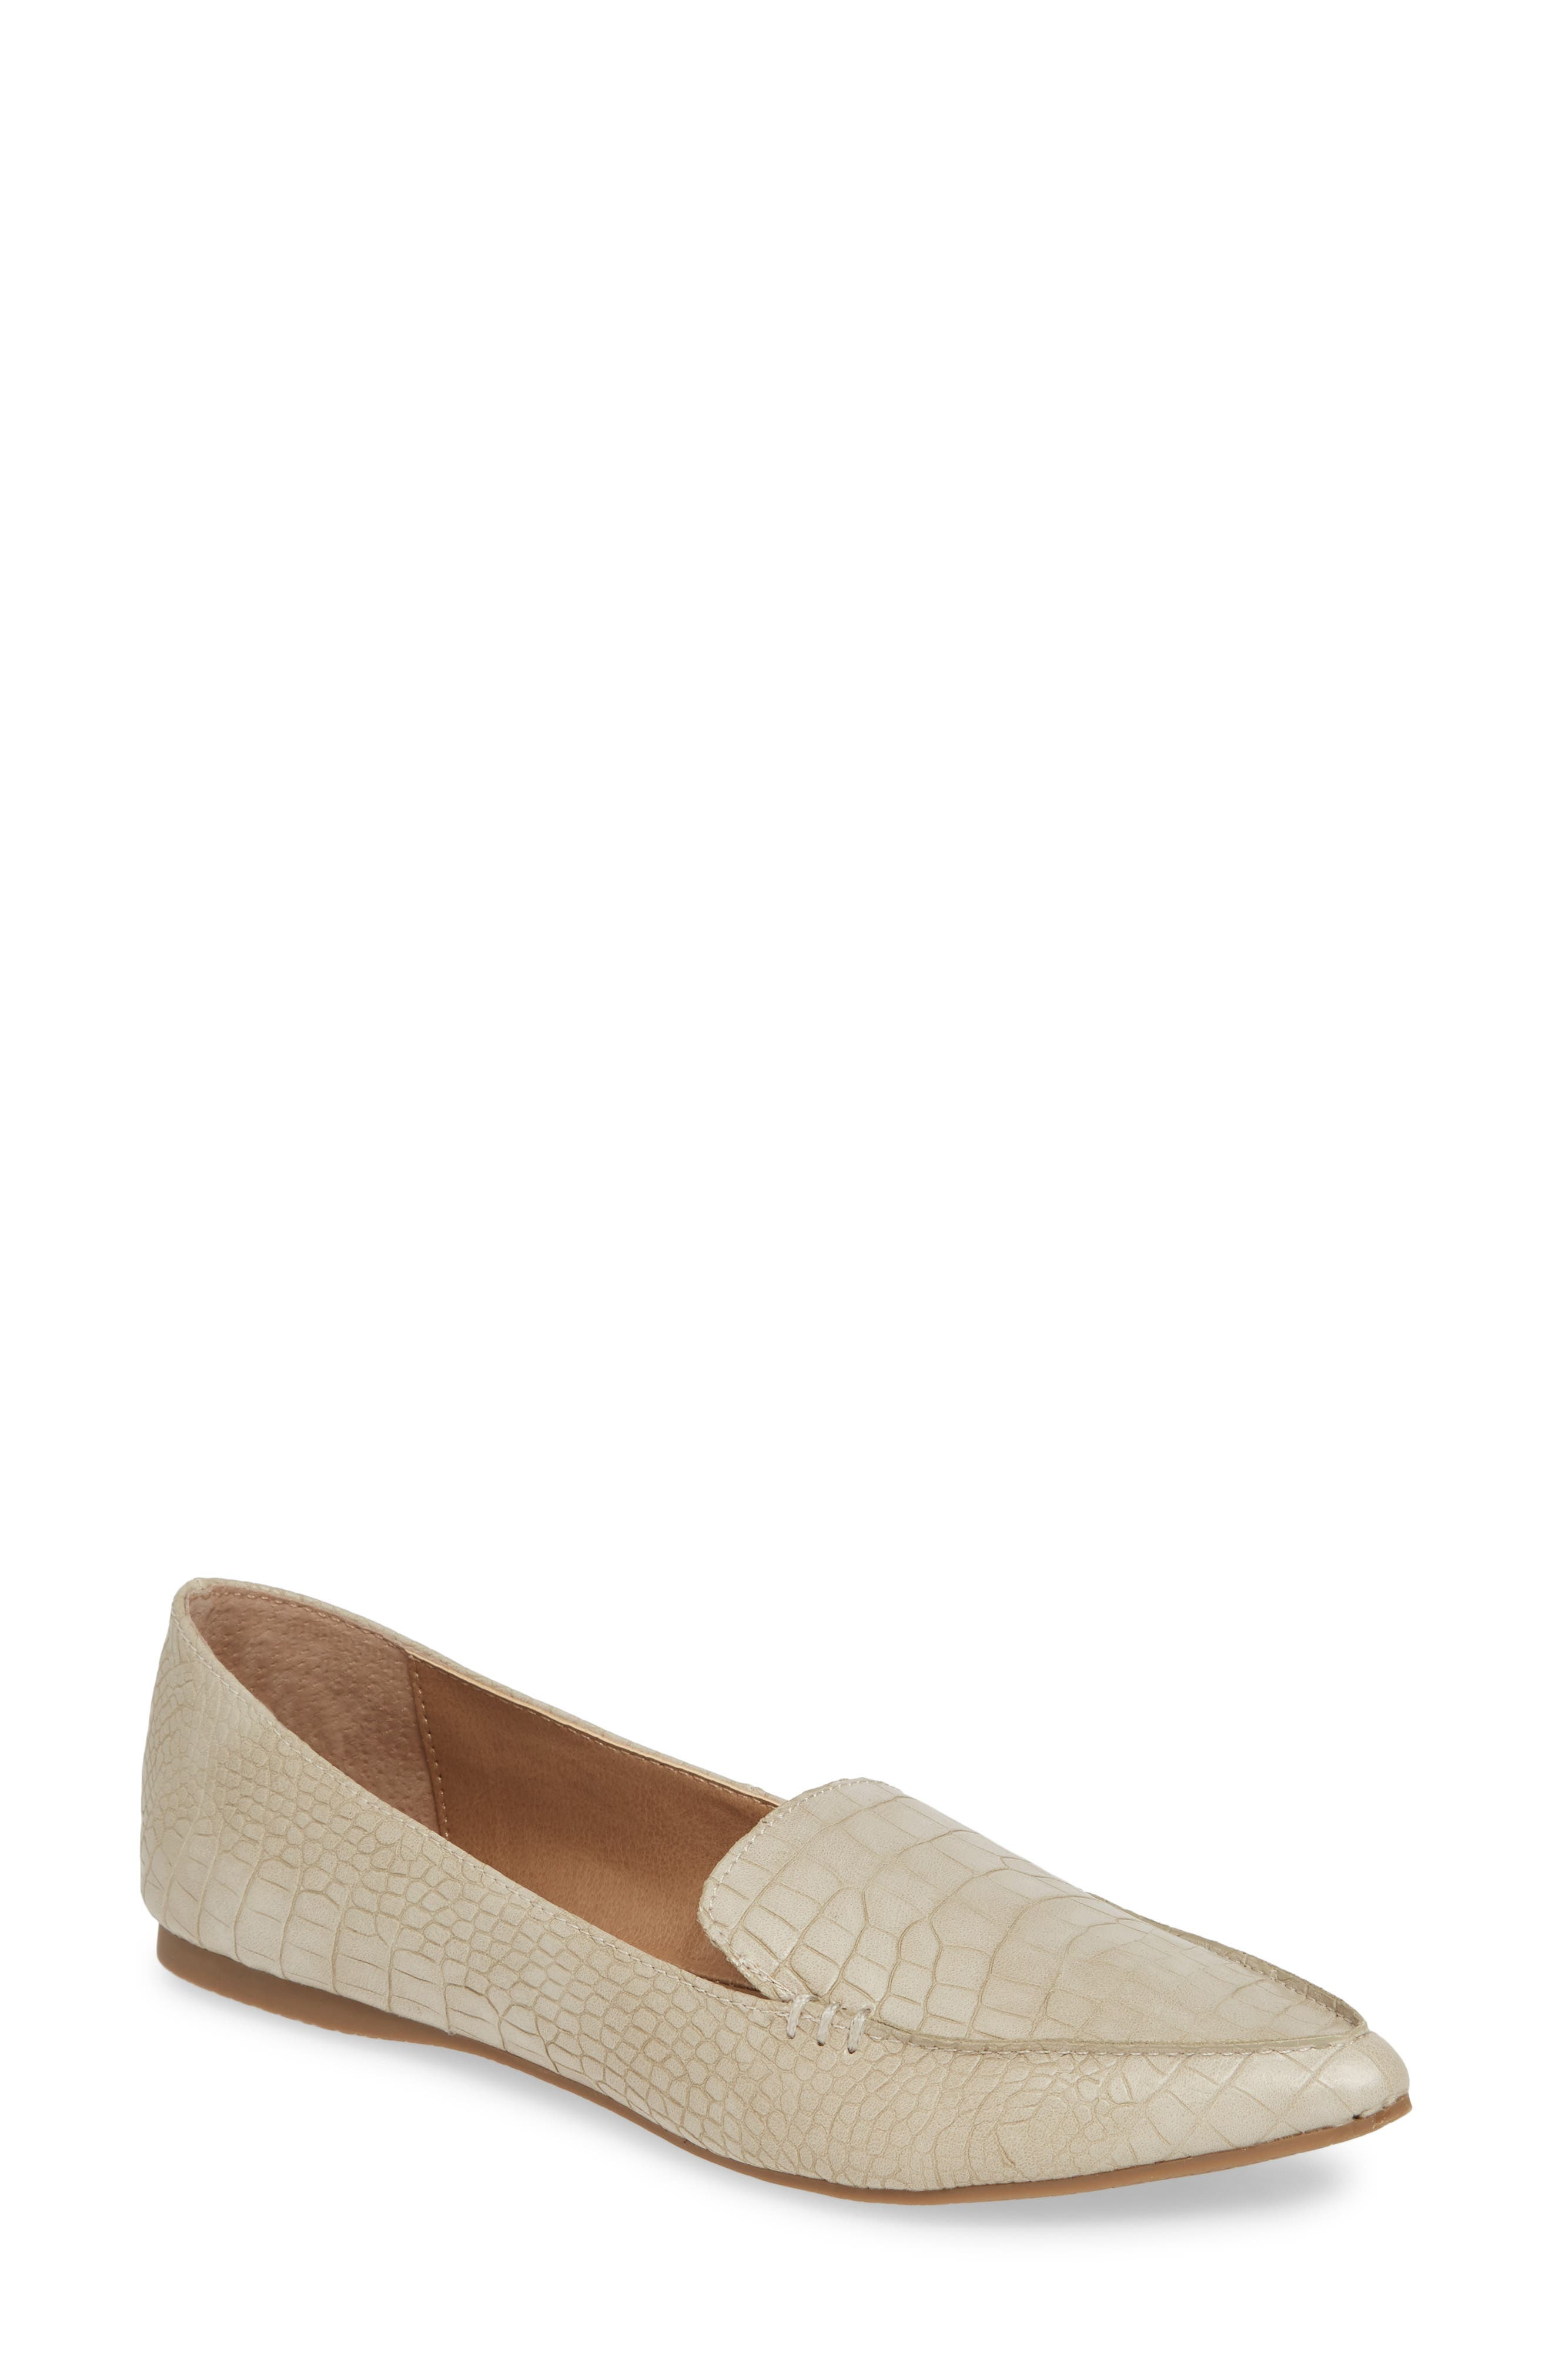 STEVE MADDEN Feather Loafer Flat, Main, color, TAUPE PRINT